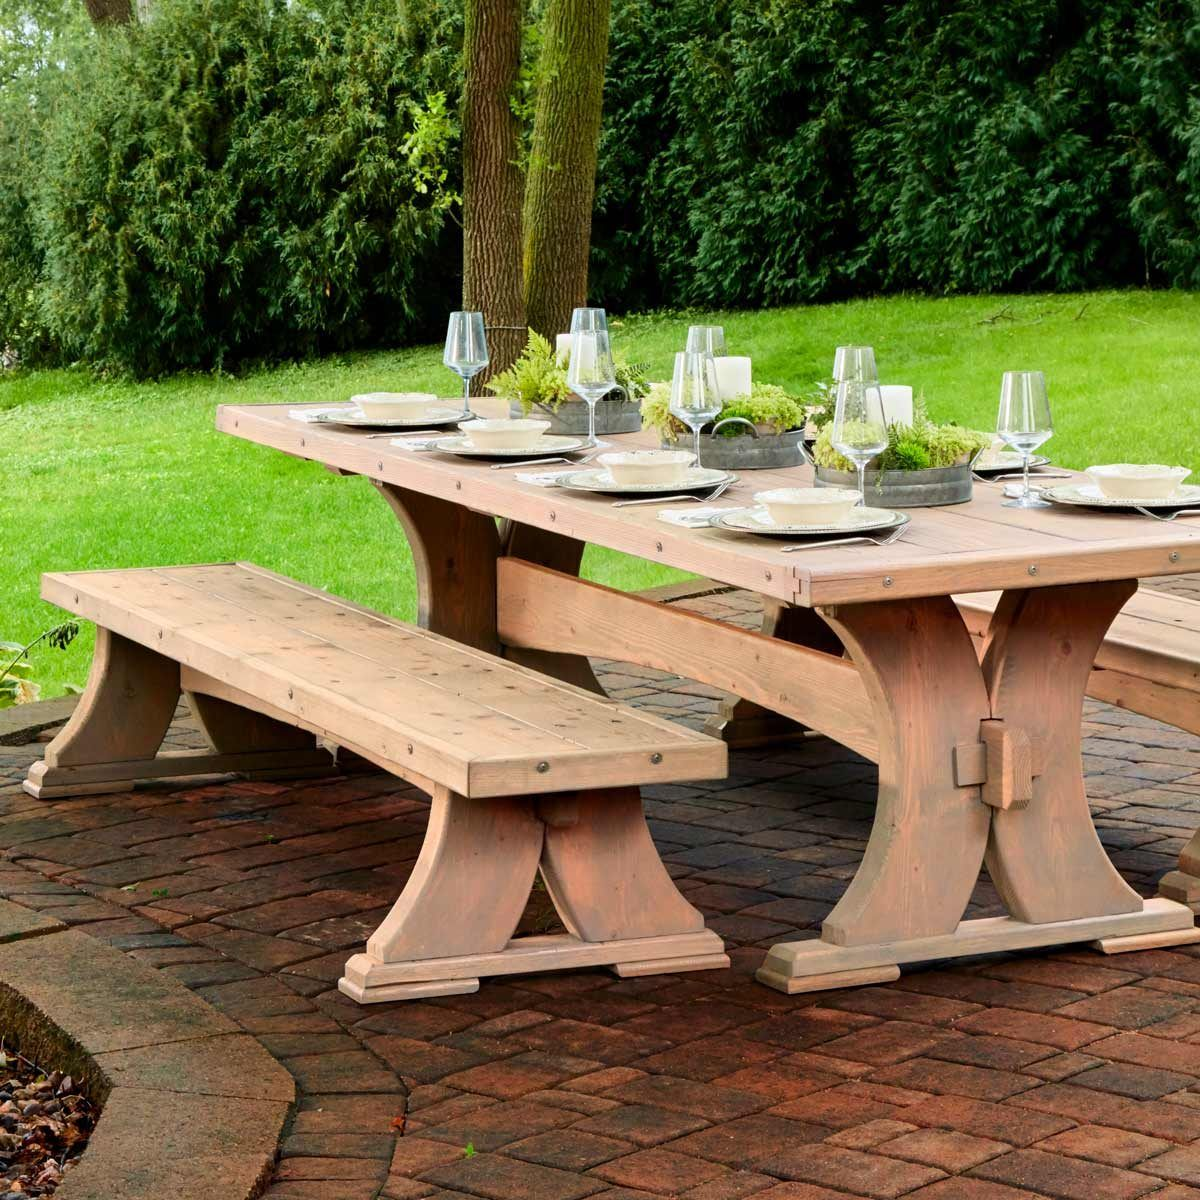 Heavy Duty Viking Bench Rustic Outdoor Furniture Dining Table Diy Outdoor Weddings